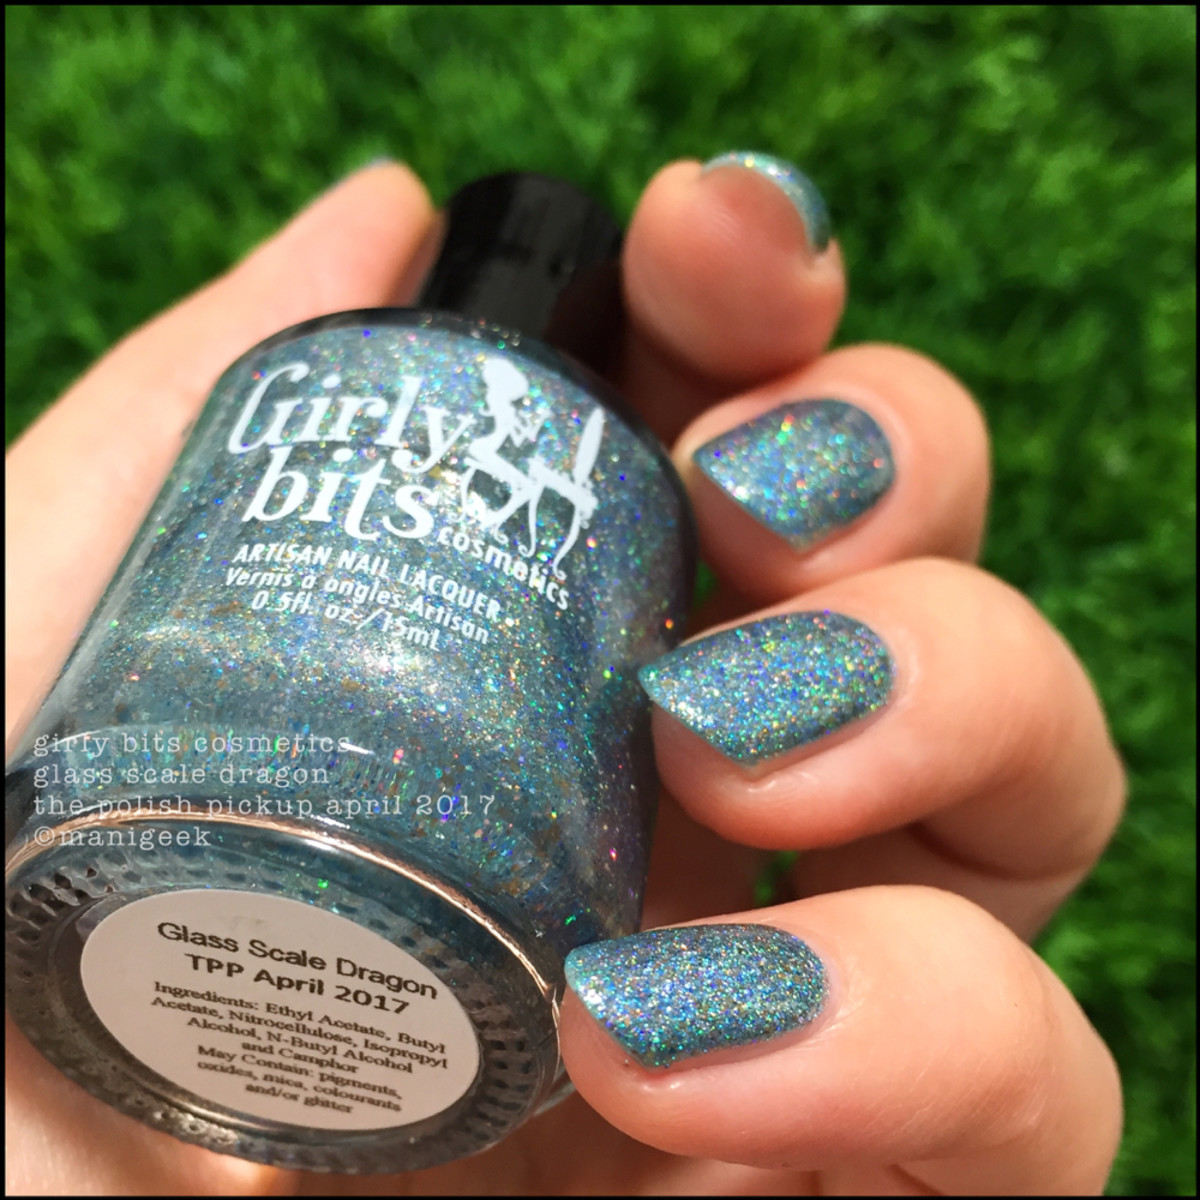 Girly Bits Glass Scale Dragon Polish Pickup - 1000 Days of Untrieds